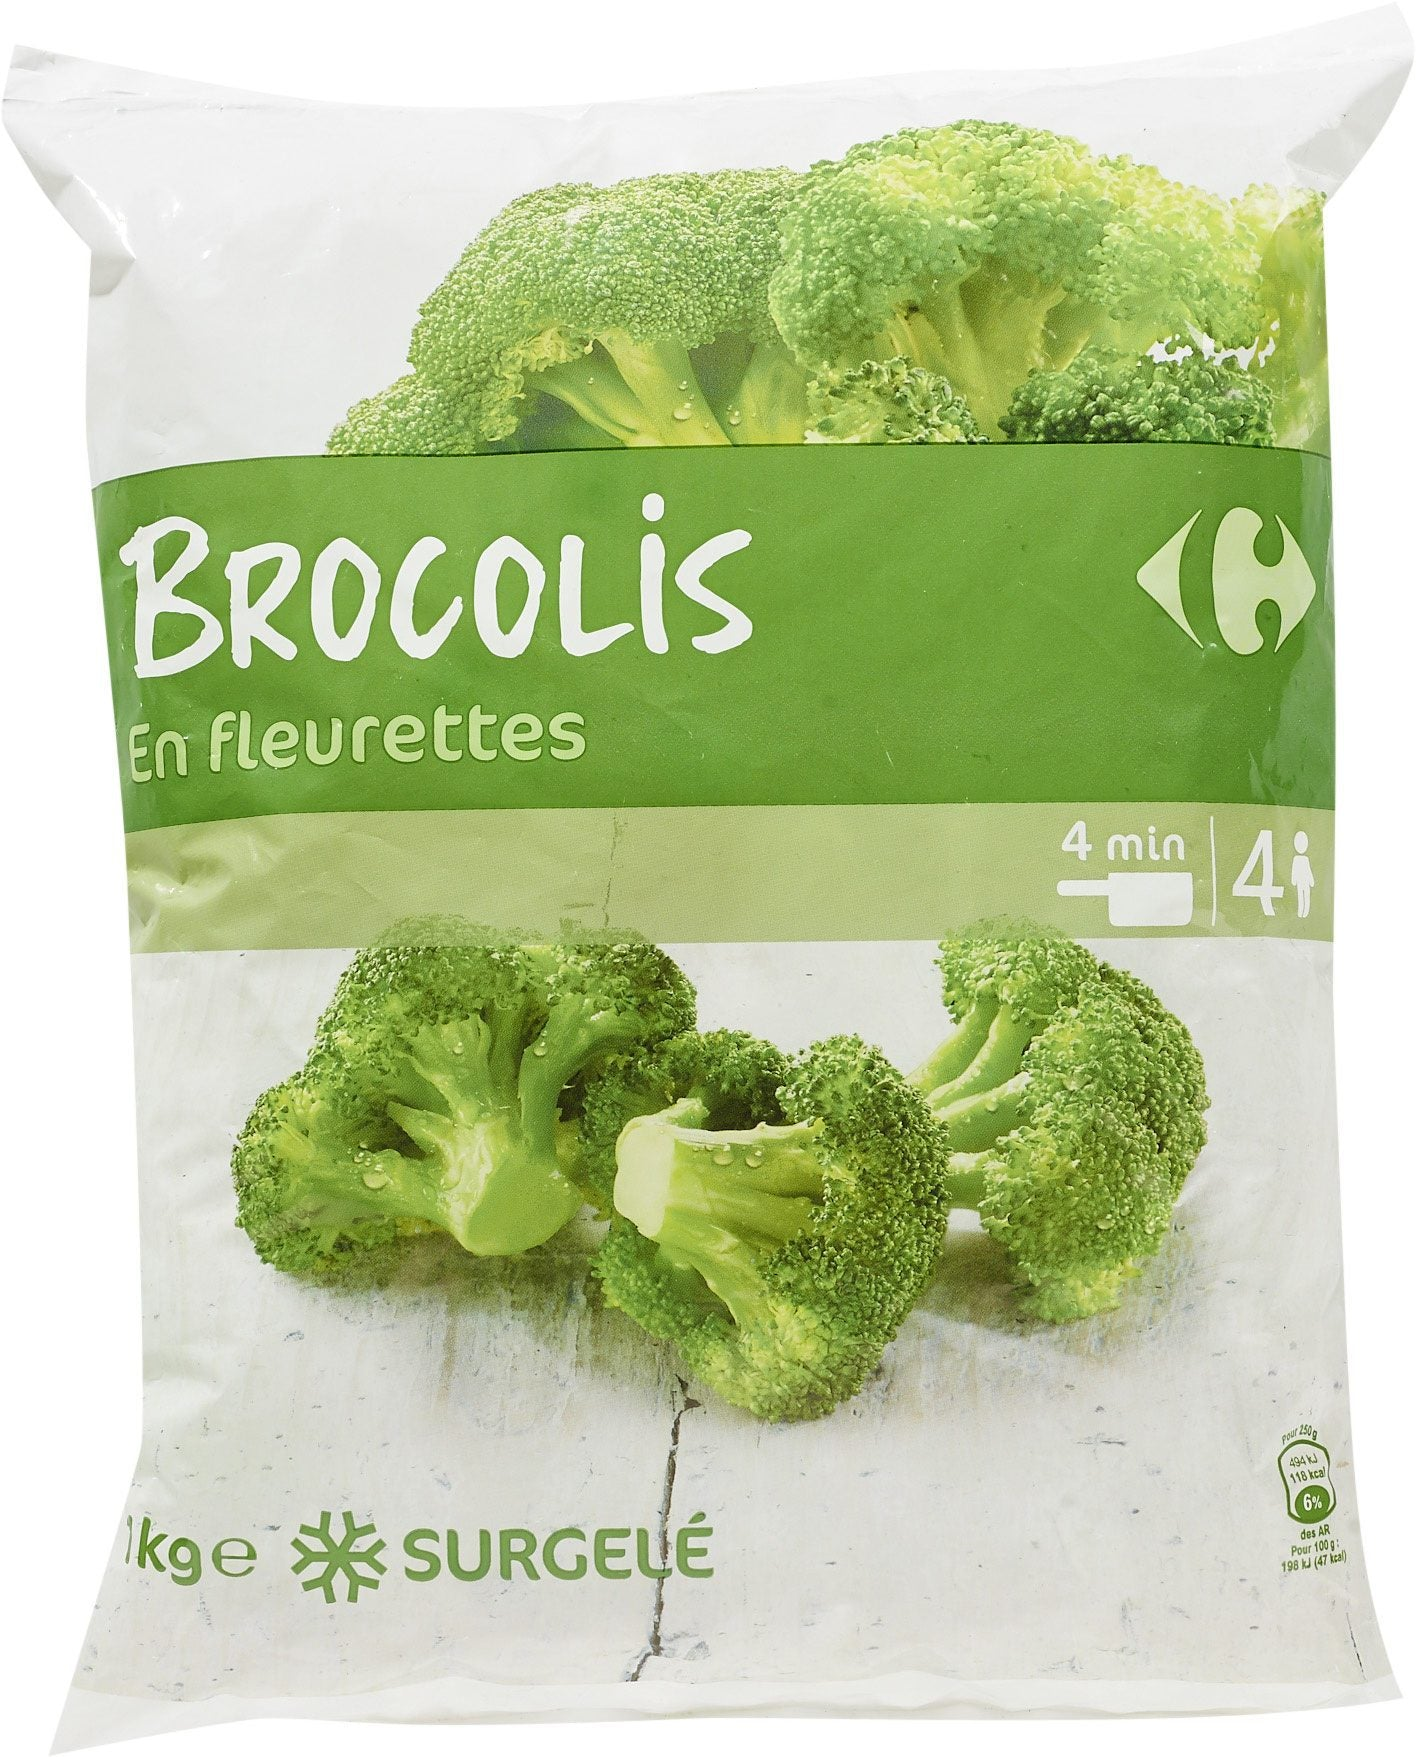 stm>Broccolli, Carrefour 1kg, frozen